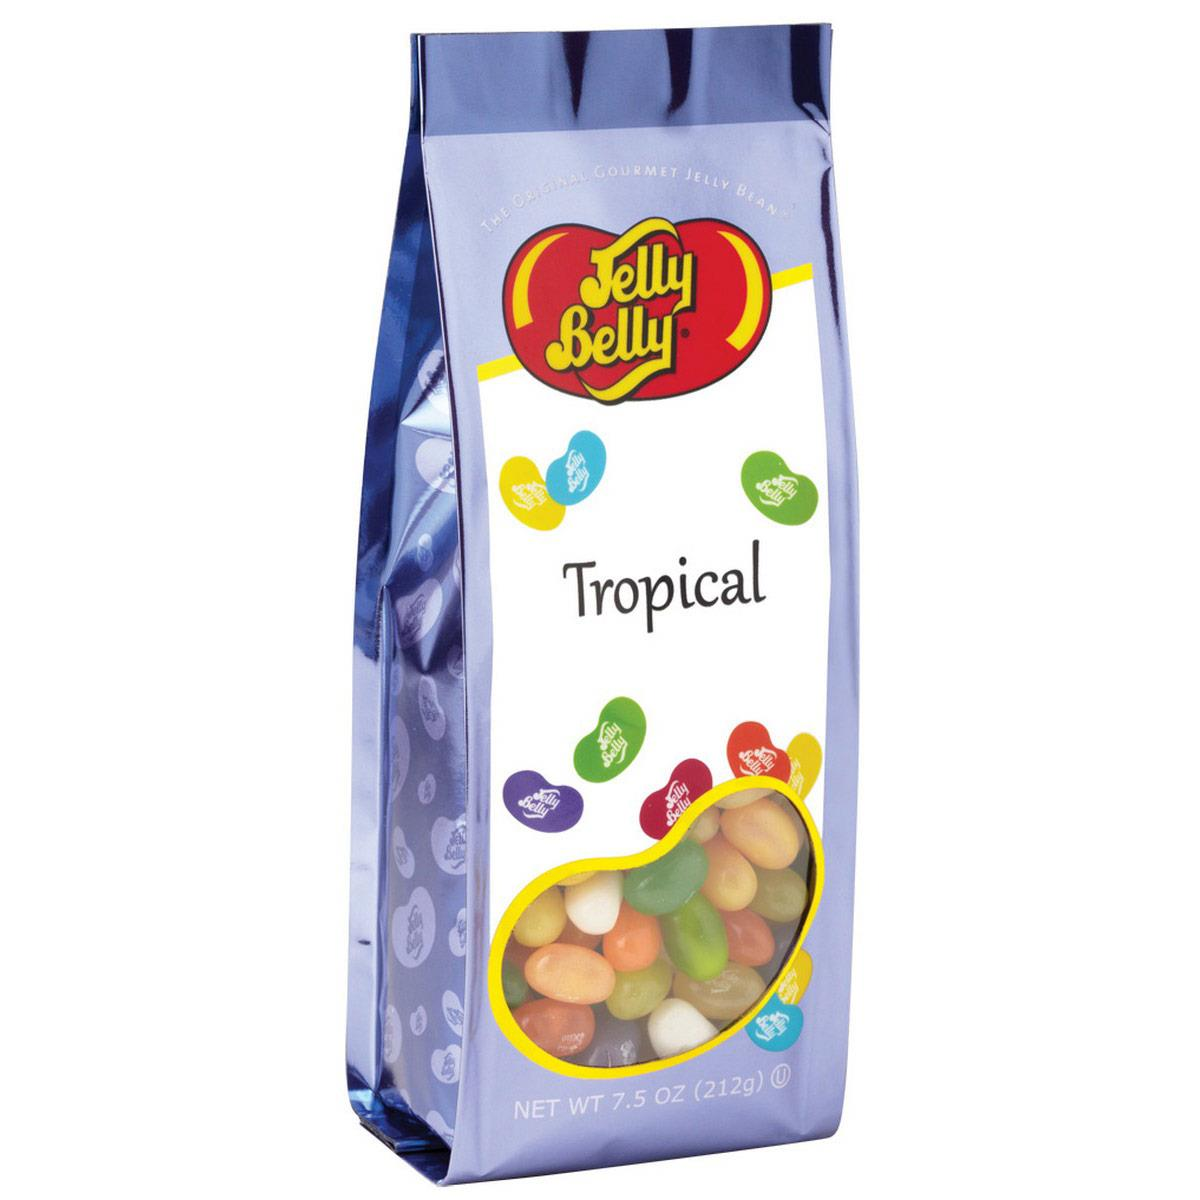 Jelly Belly Tropical Mix Jelly Beans - 7.5oz